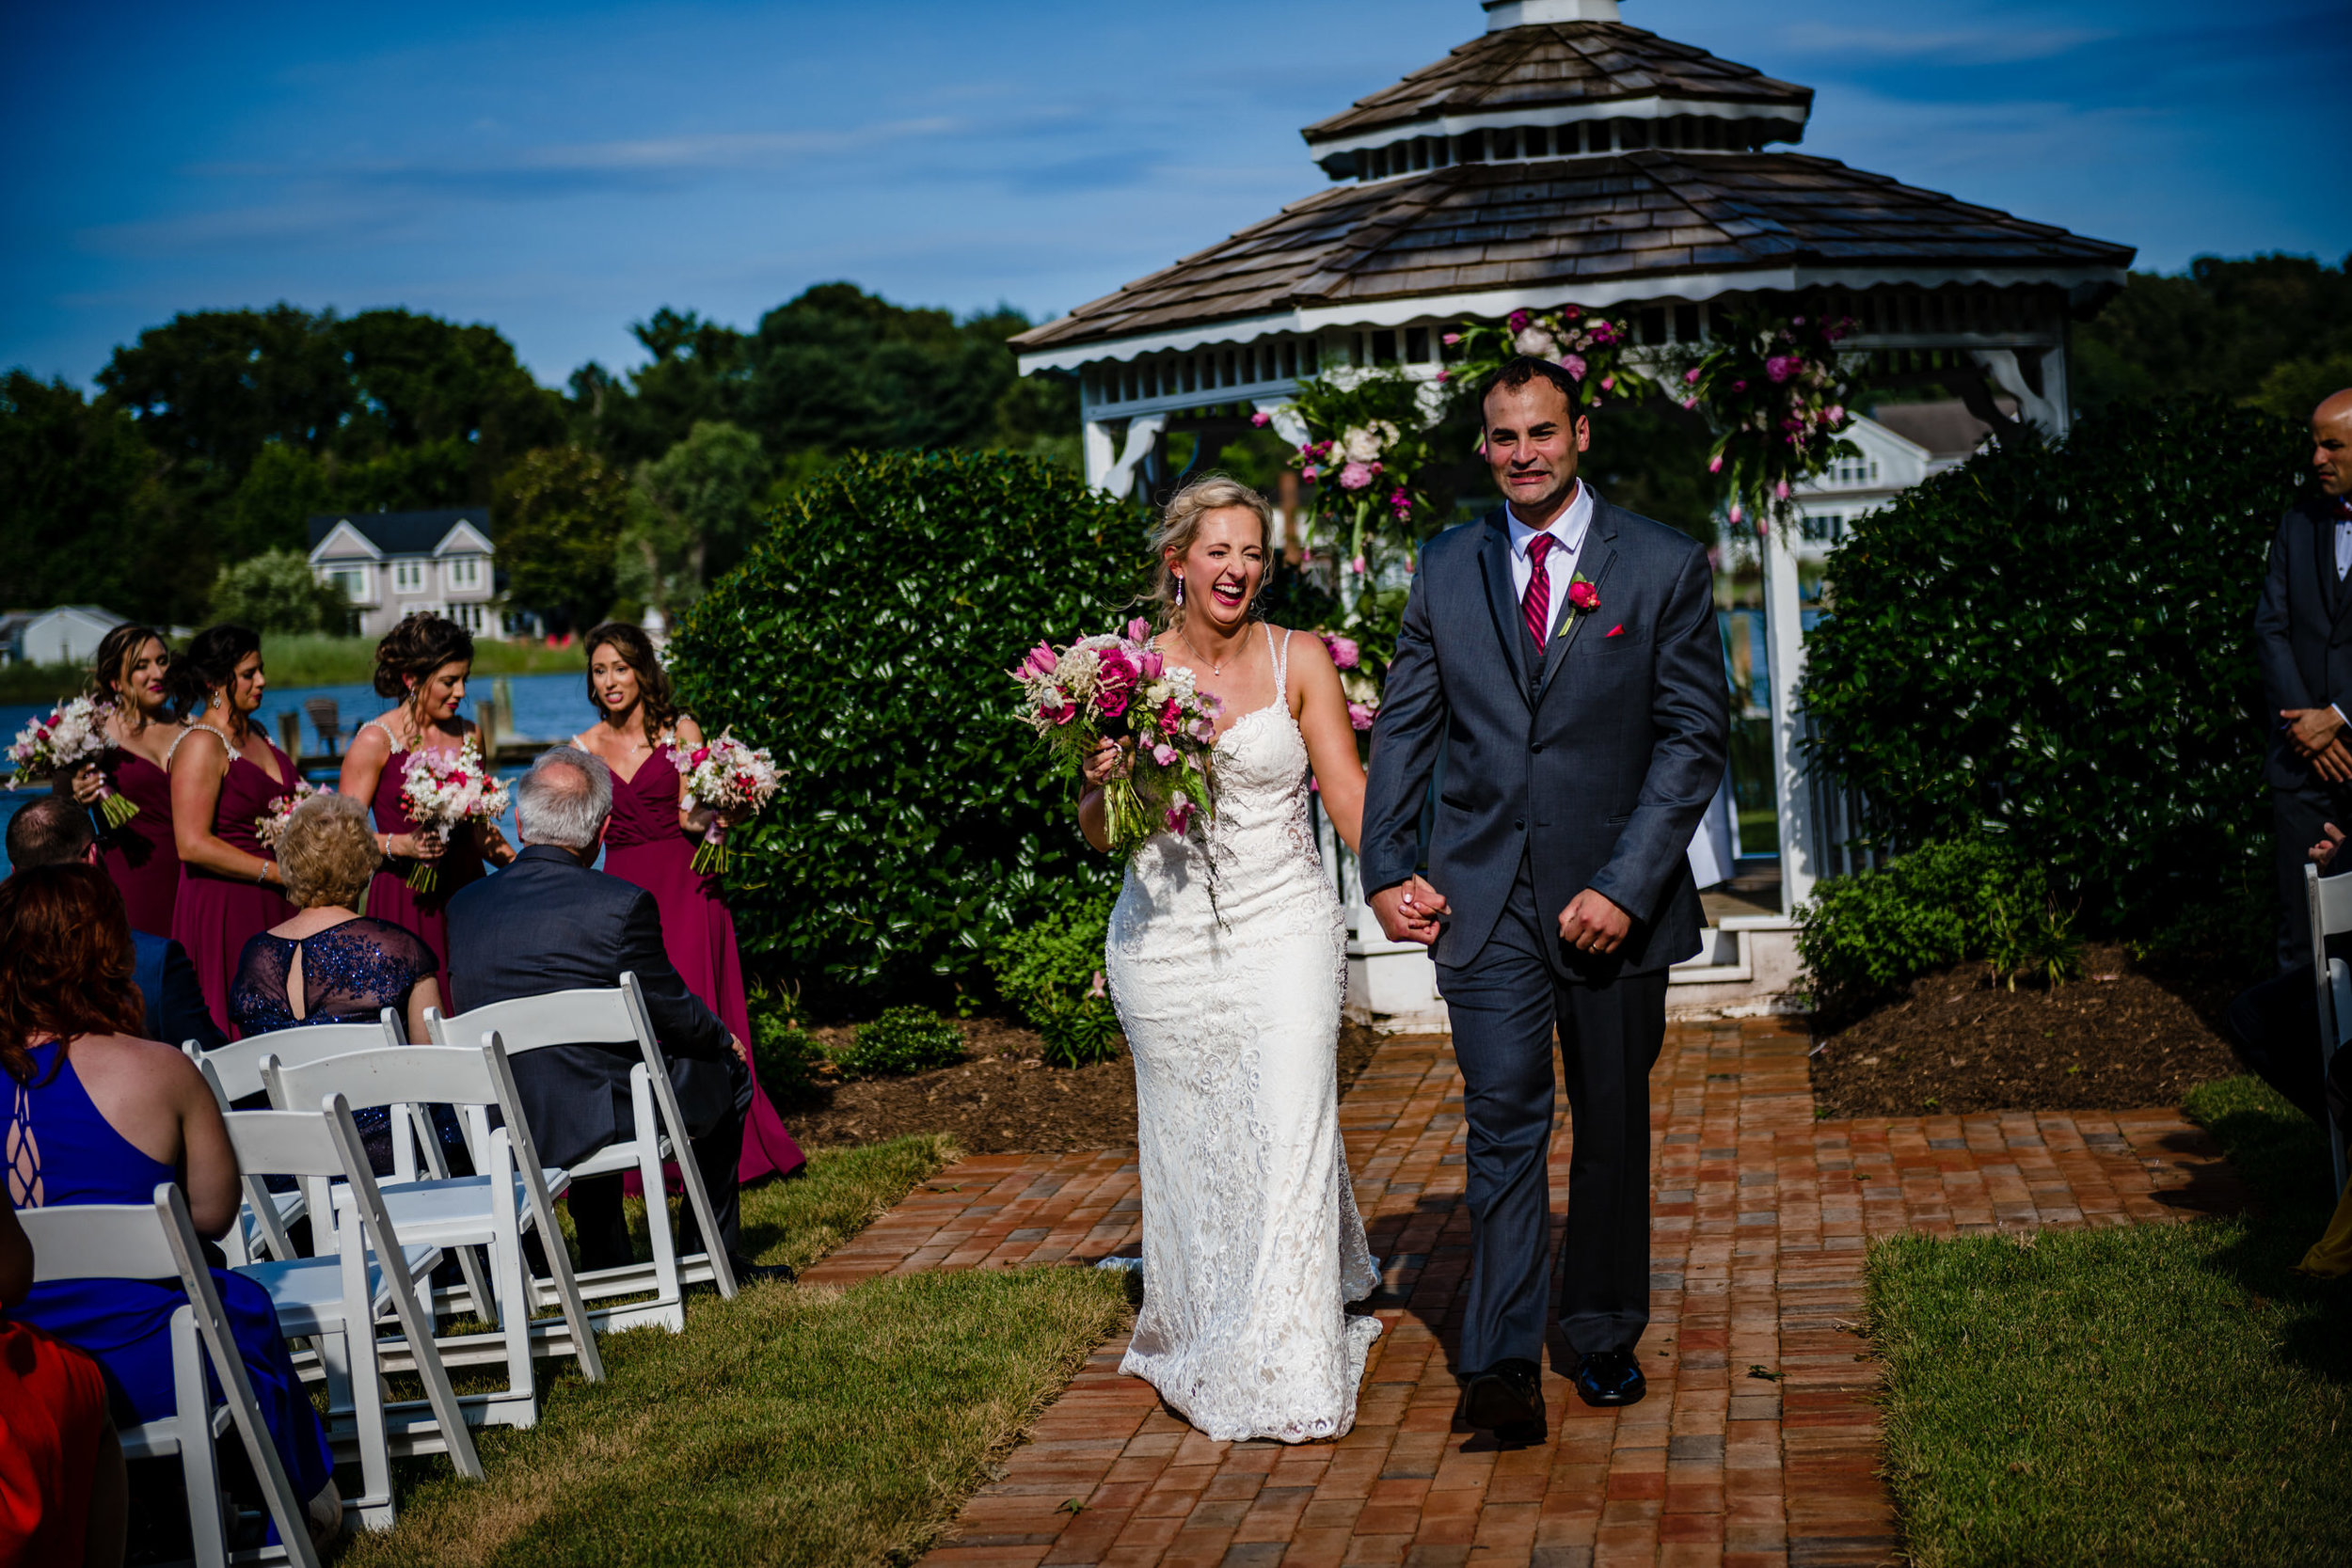 KentManorInnWedding-Marissa&Raed-Ceremony-1889.jpg